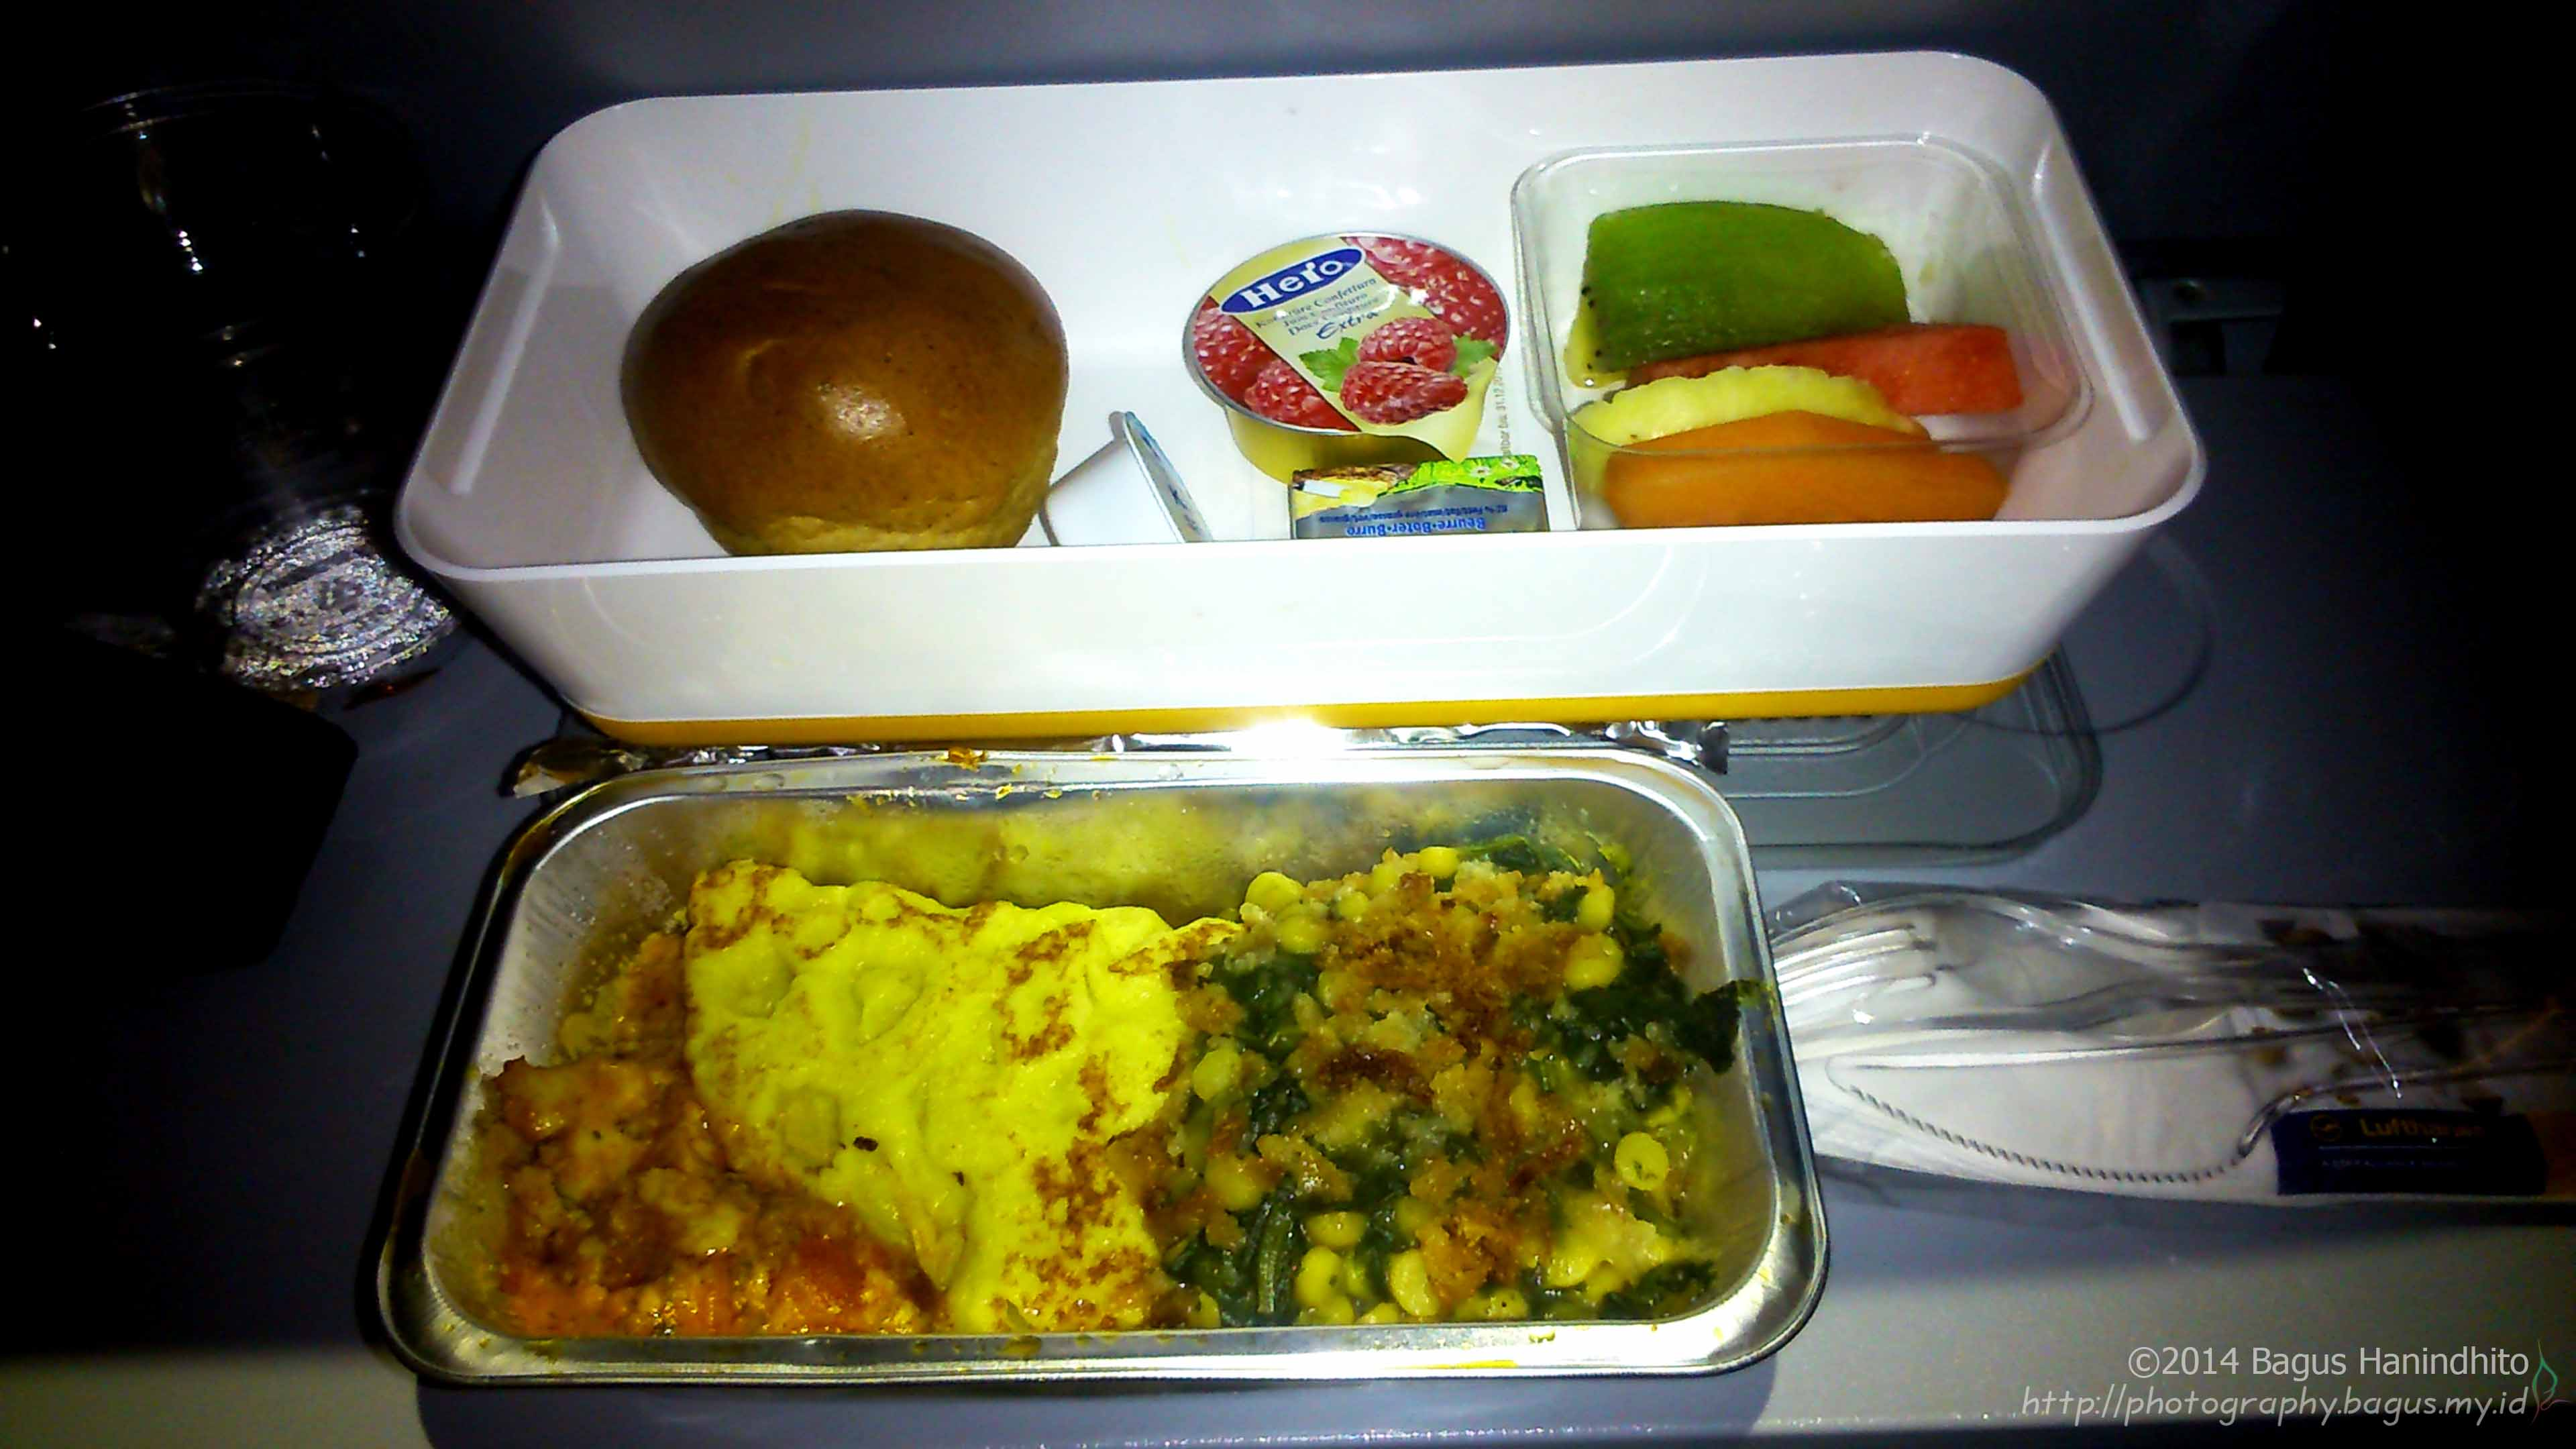 Early morning breakfast during my flight from FRA to CGK inside an Airbus A380-800